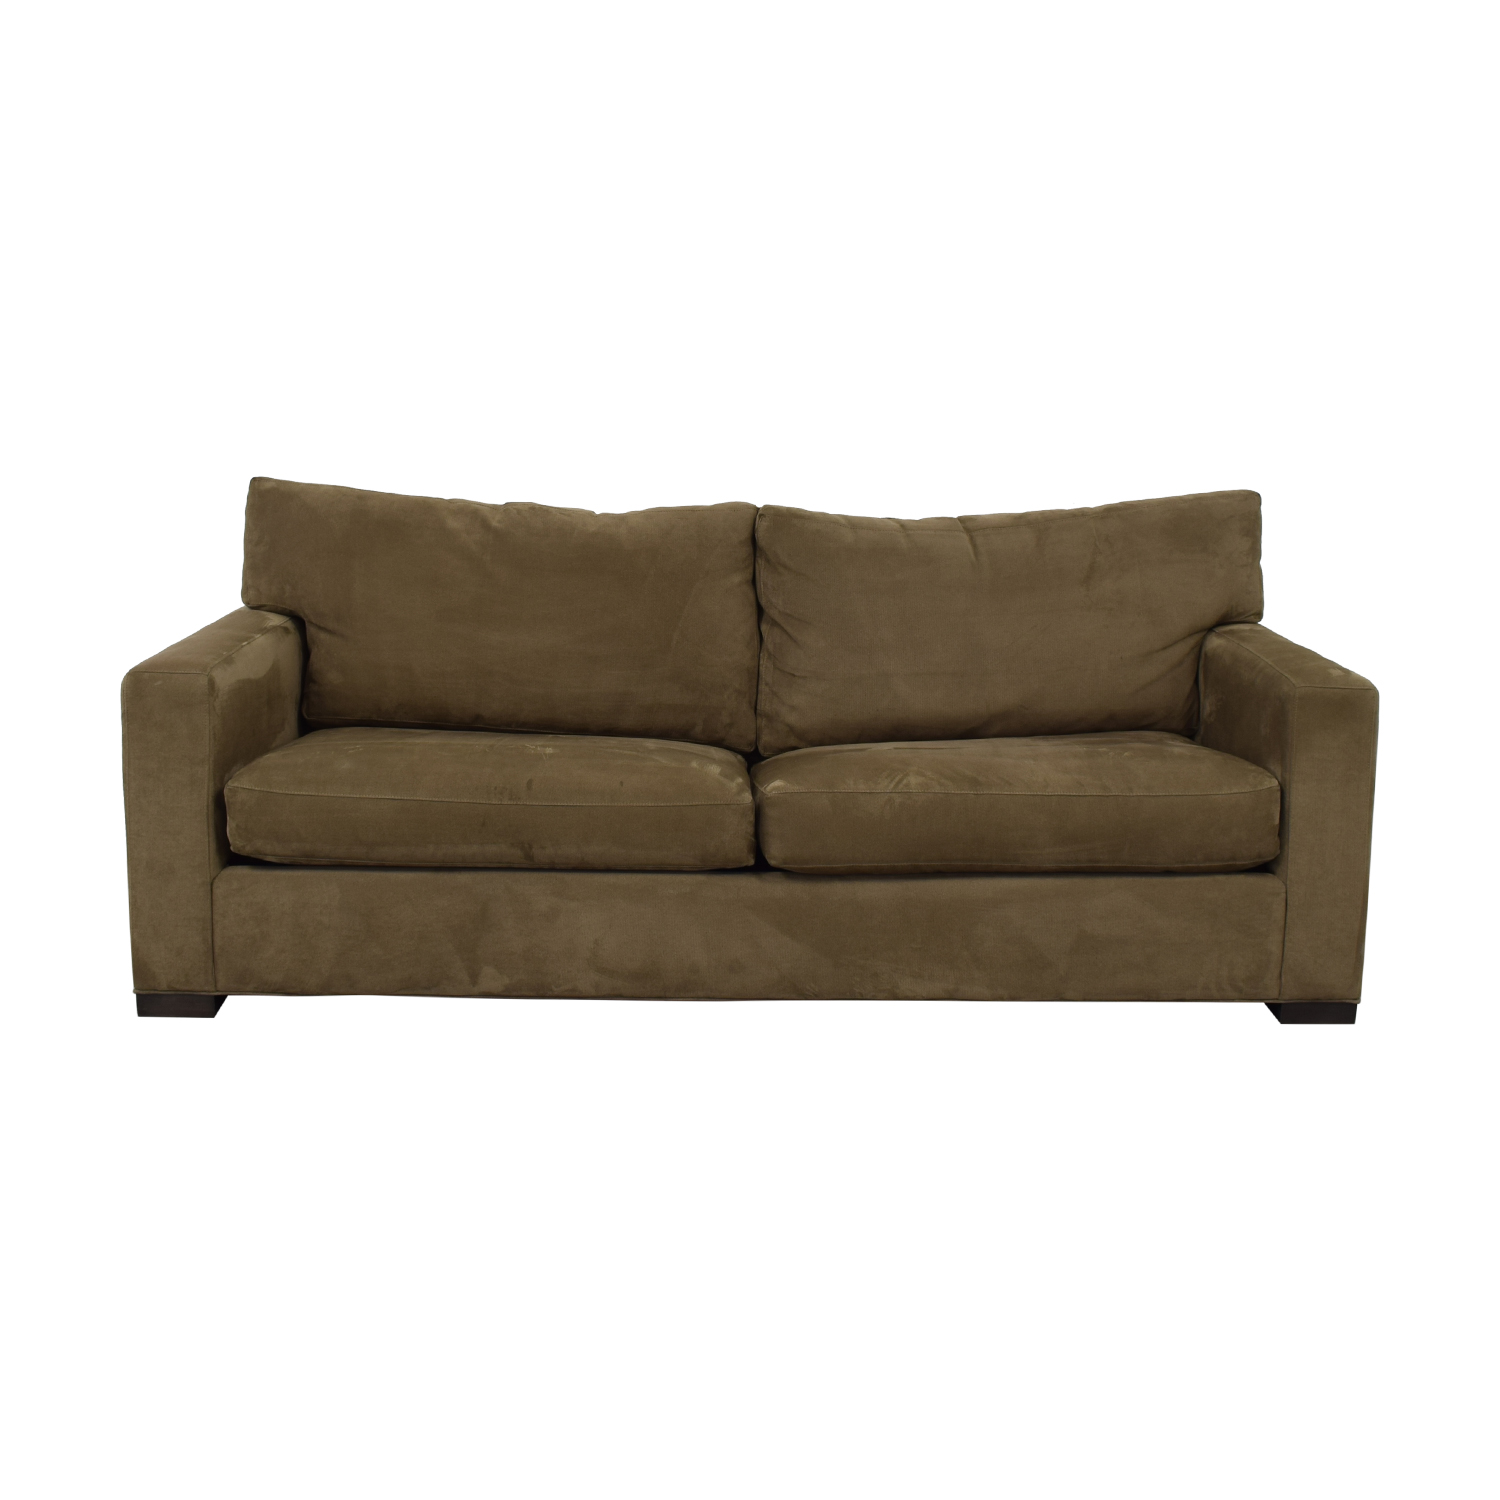 buy Crate & Barrel Axis II Queen Sleeper Sofa Crate & Barrel Sofa Beds